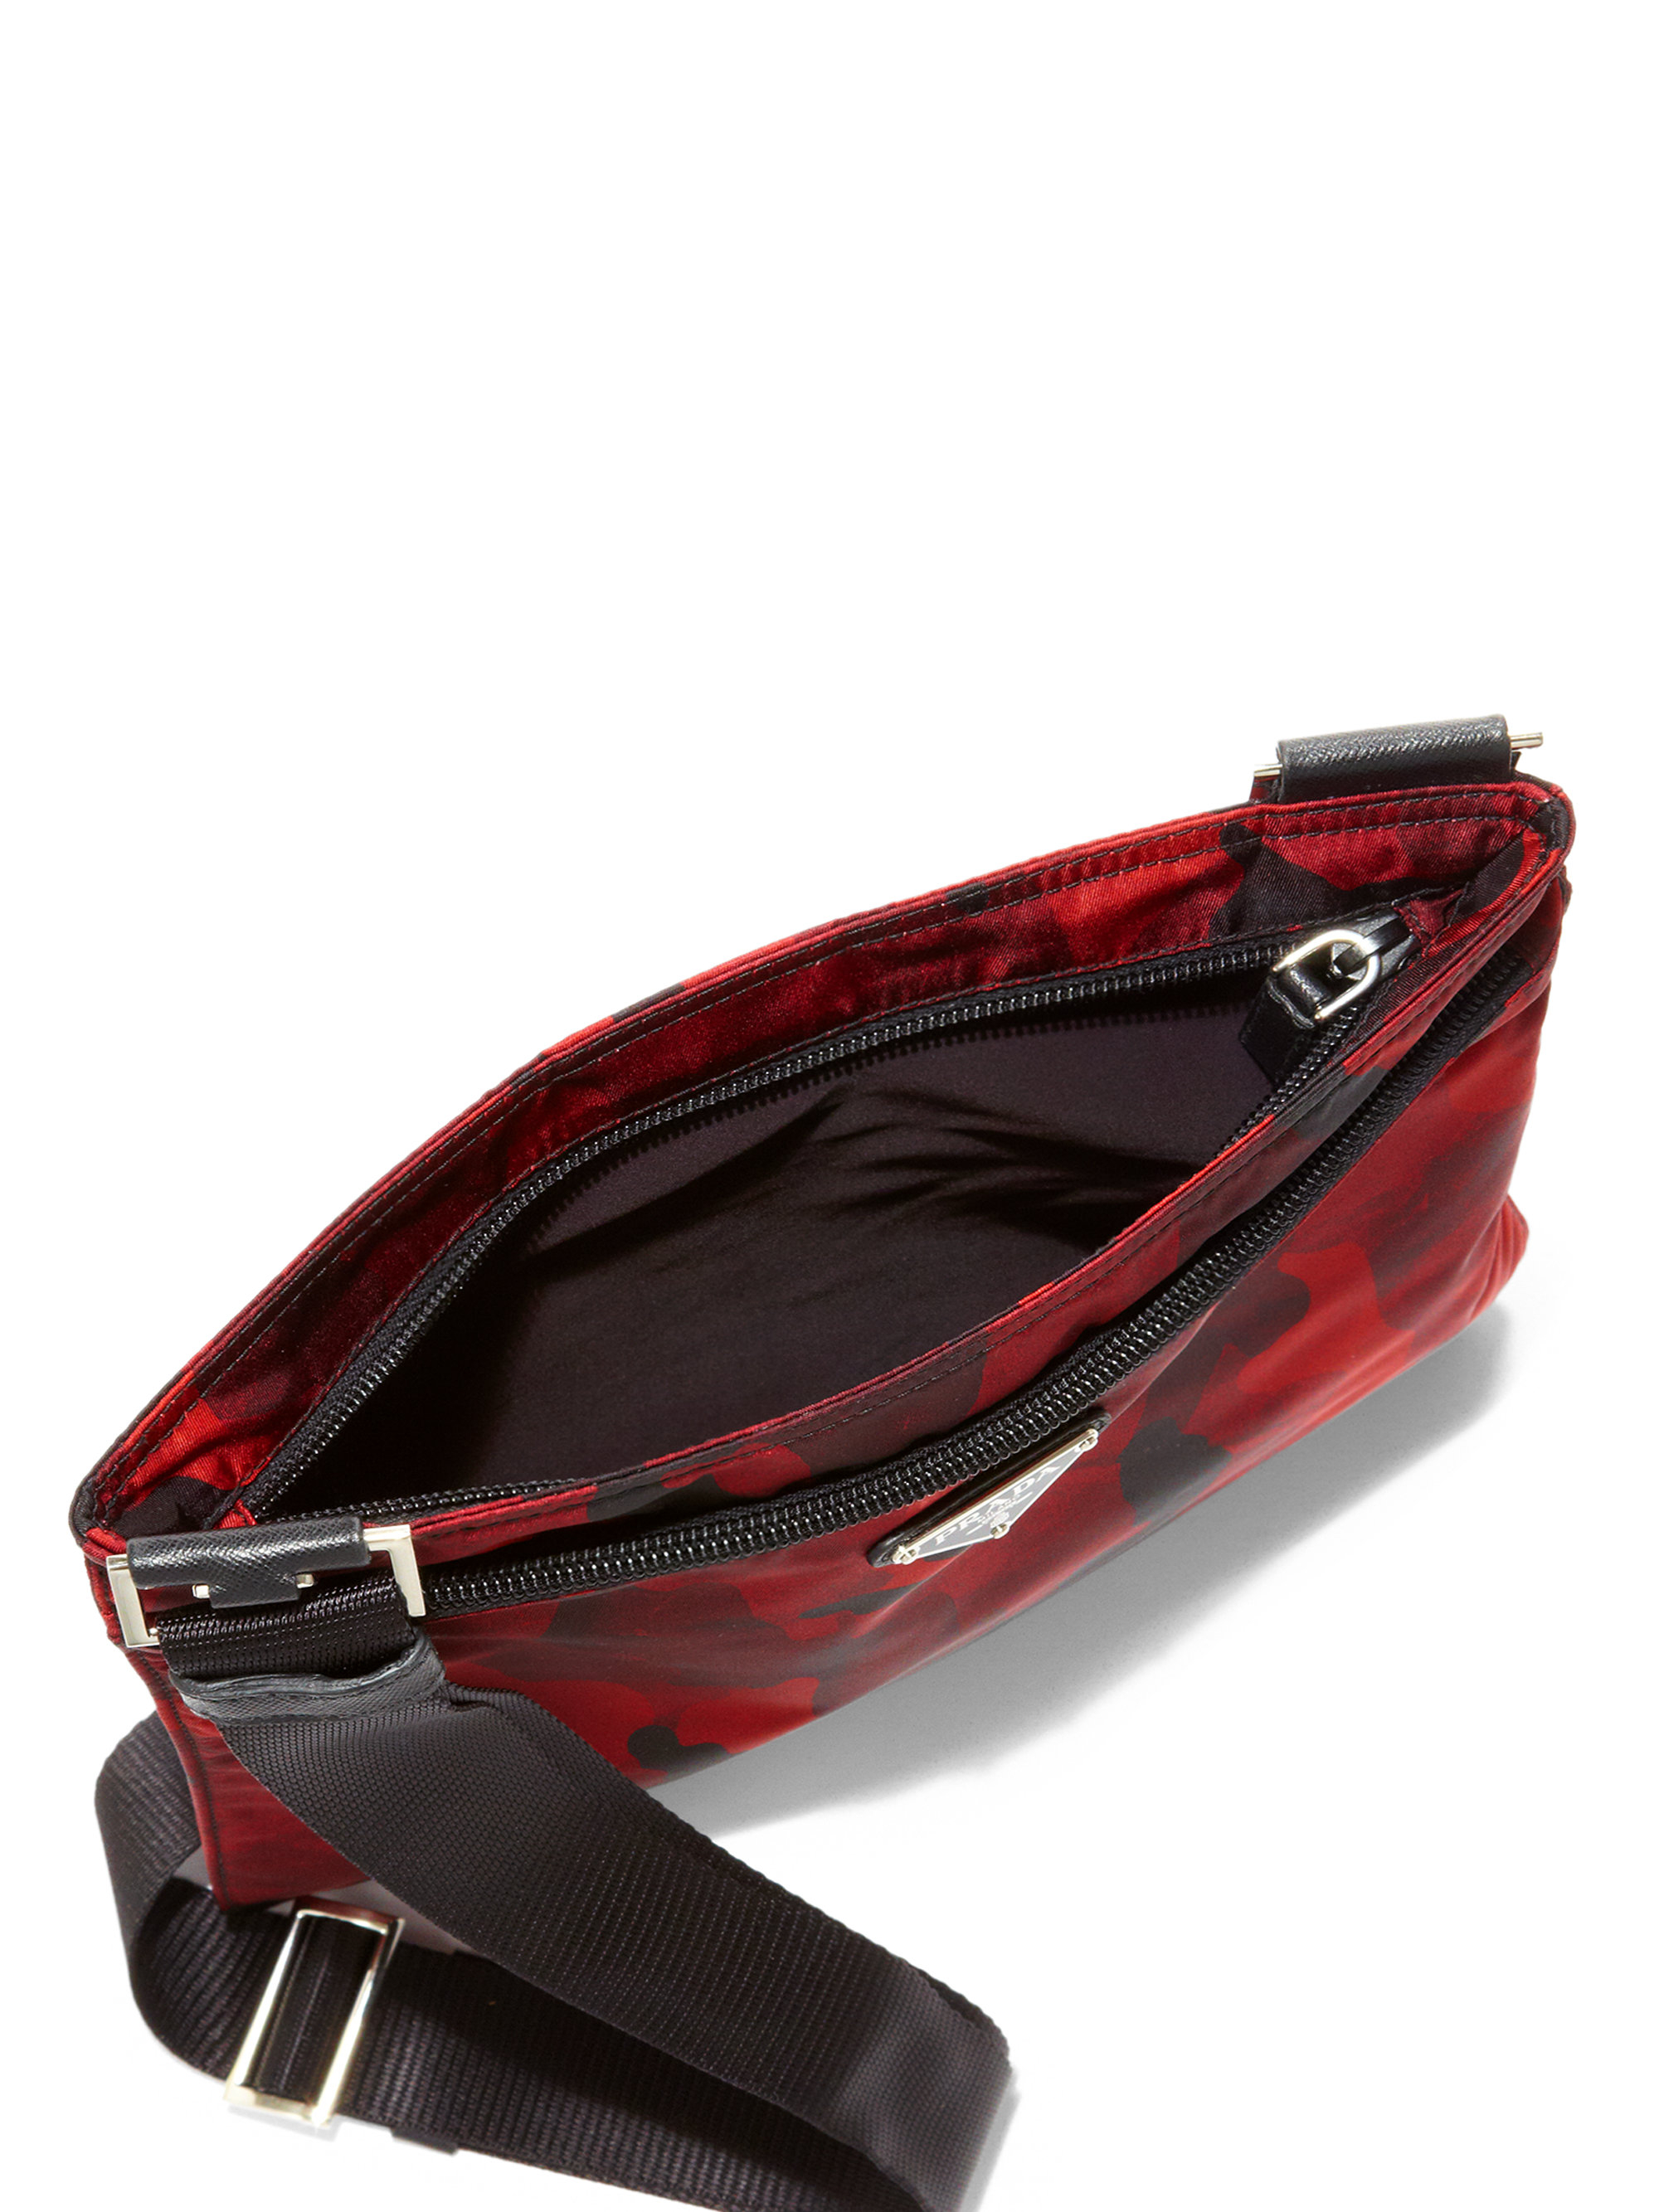 Prada Tessuto Camouflage Small Crossbody Bag in Red (BORDEAUX) | Lyst